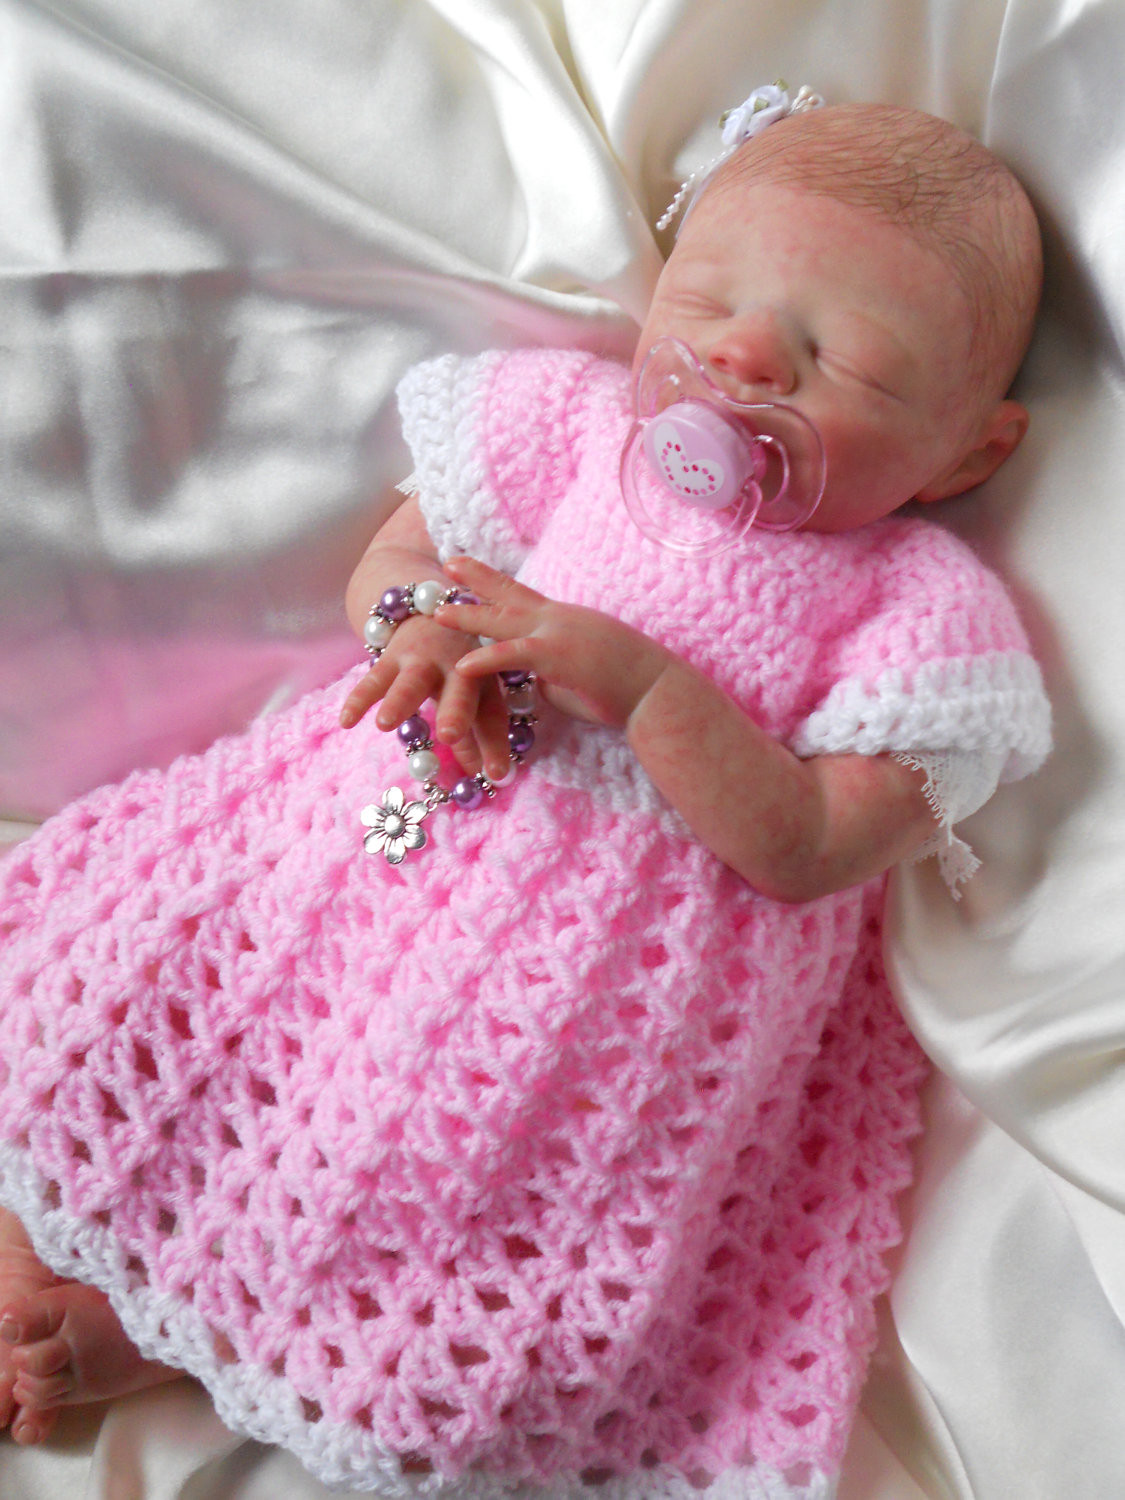 Free Crochet Baby Dress Patterns Best Of Free Crochet Patterns Baby Dresses Of Fresh 40 Pictures Free Crochet Baby Dress Patterns